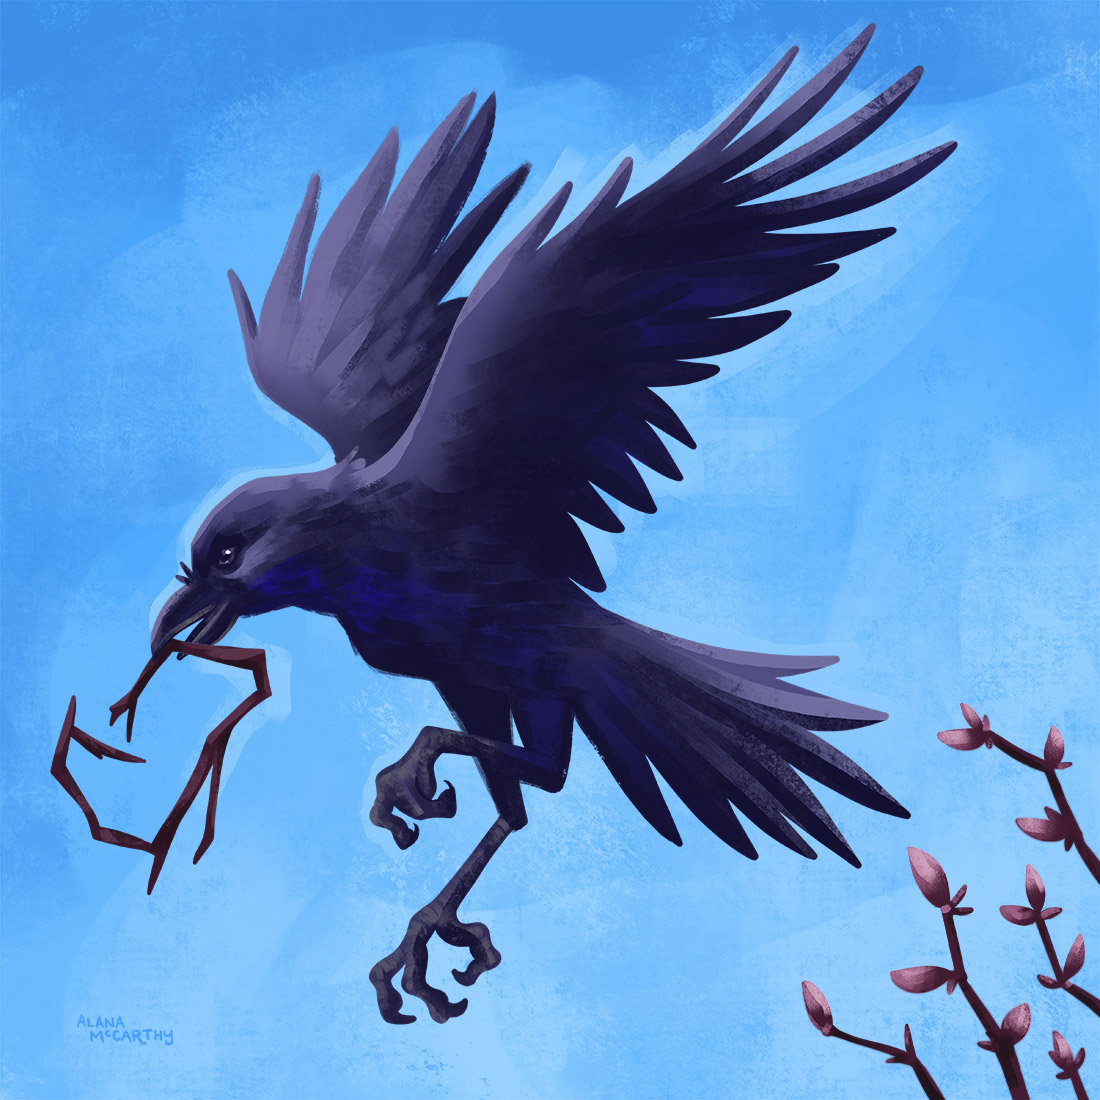 Crow couple in our area inspired me out of a creative slump. Read more https://soo.nr/p7Qe  #illustration #illustrator #painting #animalart #creative #bookart #bookcover #creativity #artbusiness  #freelanceillustrator #freelancer #freelancelife #creativedirector #artdirectorpic.twitter.com/GfJjpt6kcE